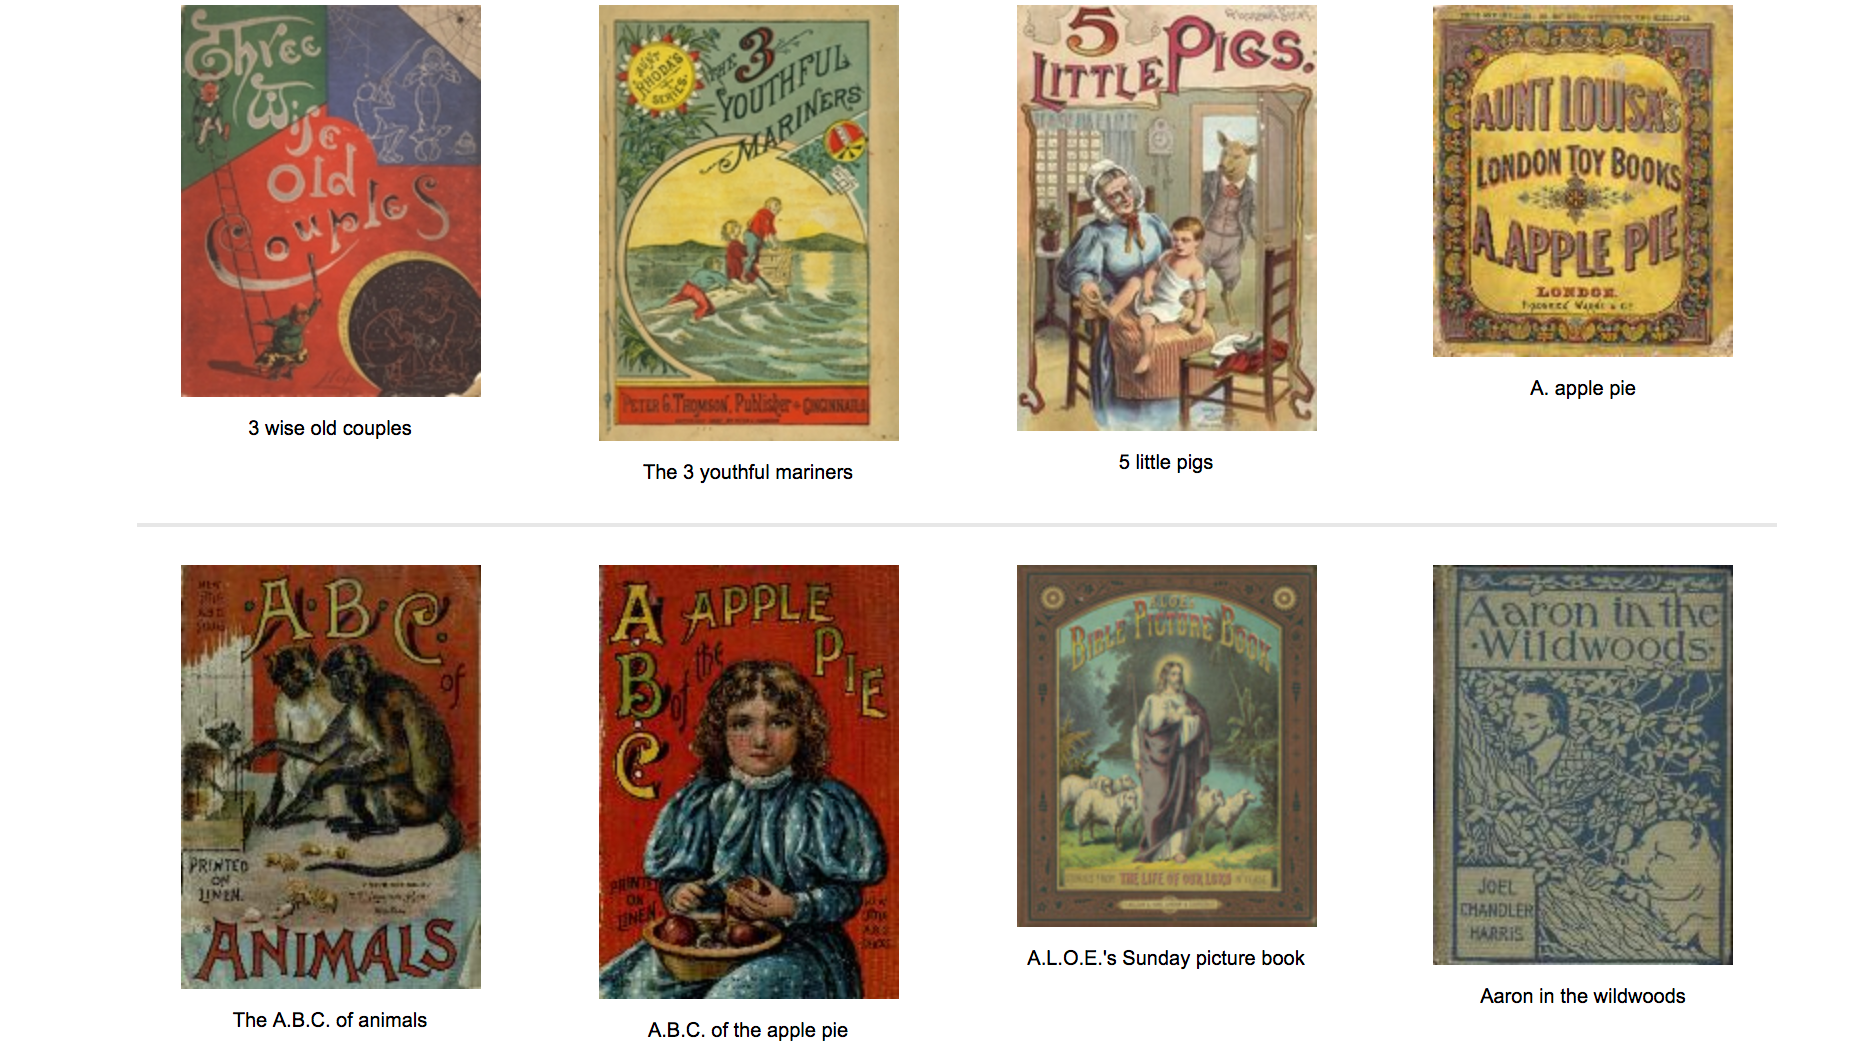 Check Out This Free Digital Collection Of 6000 19th-Century Children's Books